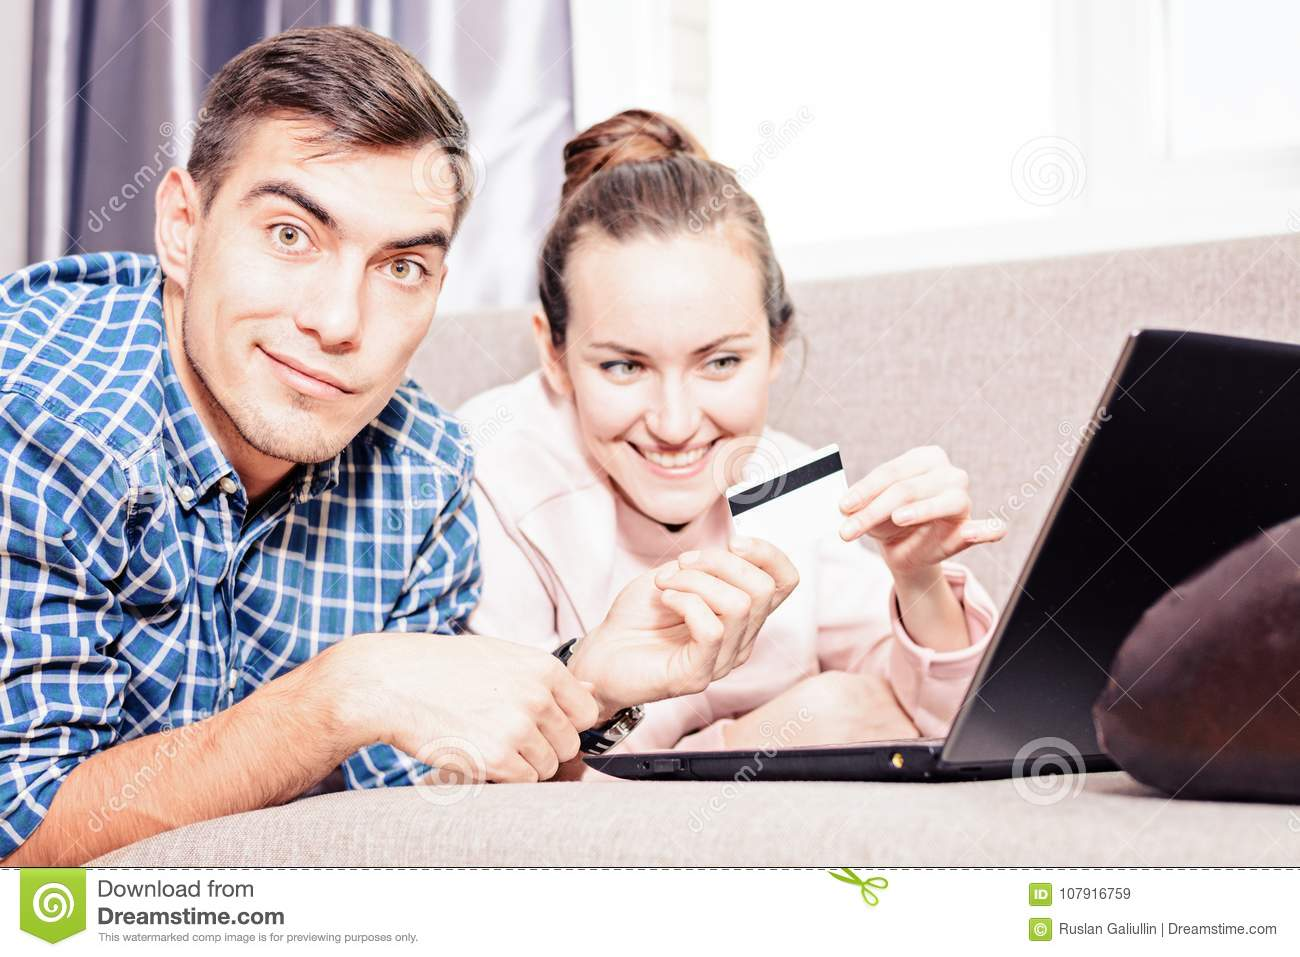 Modern young family makes purchases online Leda on sofa using a laptop, payment by credit card. Emotional face